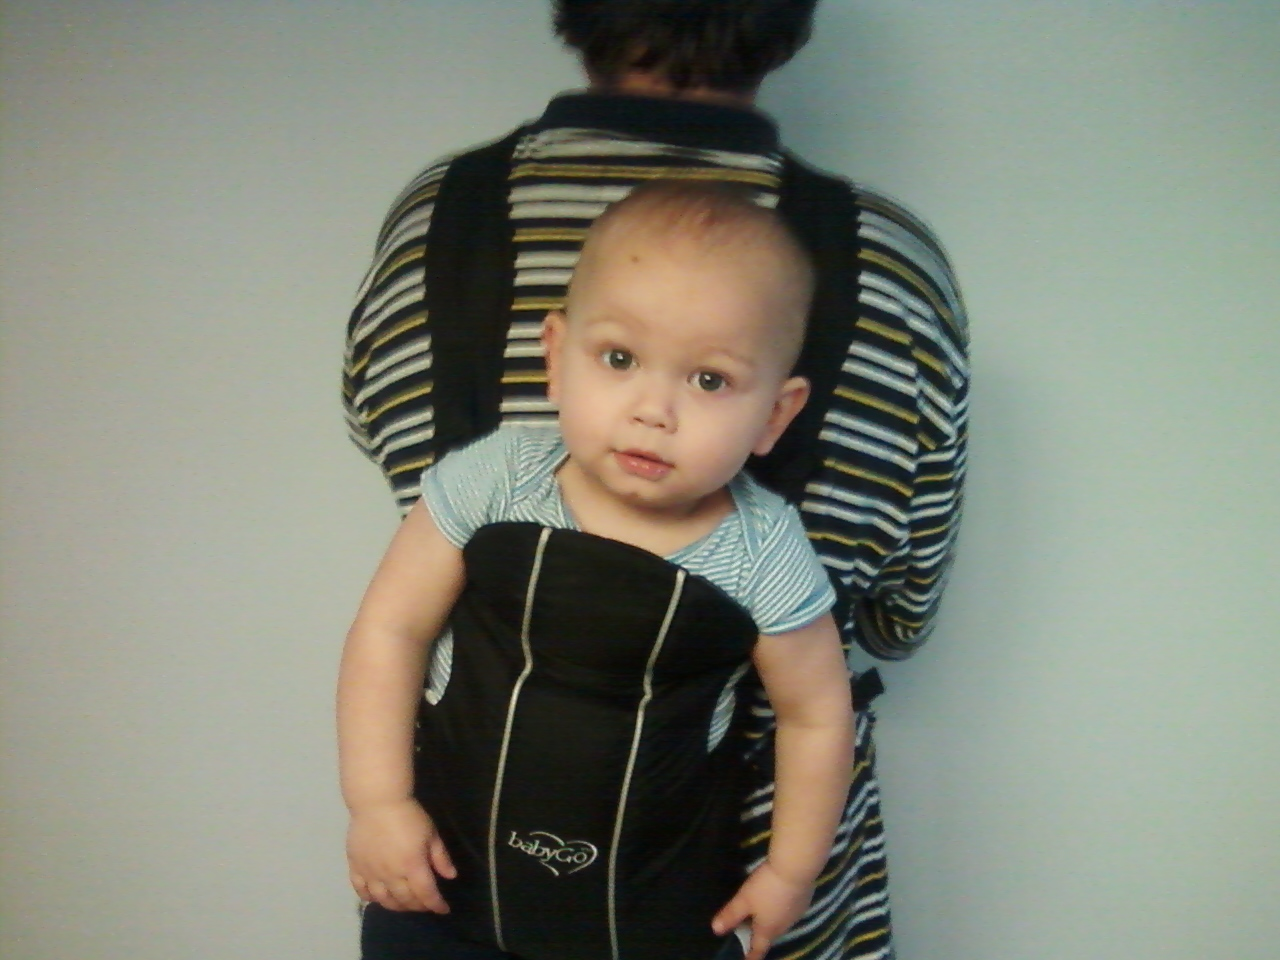 14 month old fits in baby carrier, wordless wednesday picture of 14 month old in baby carrier